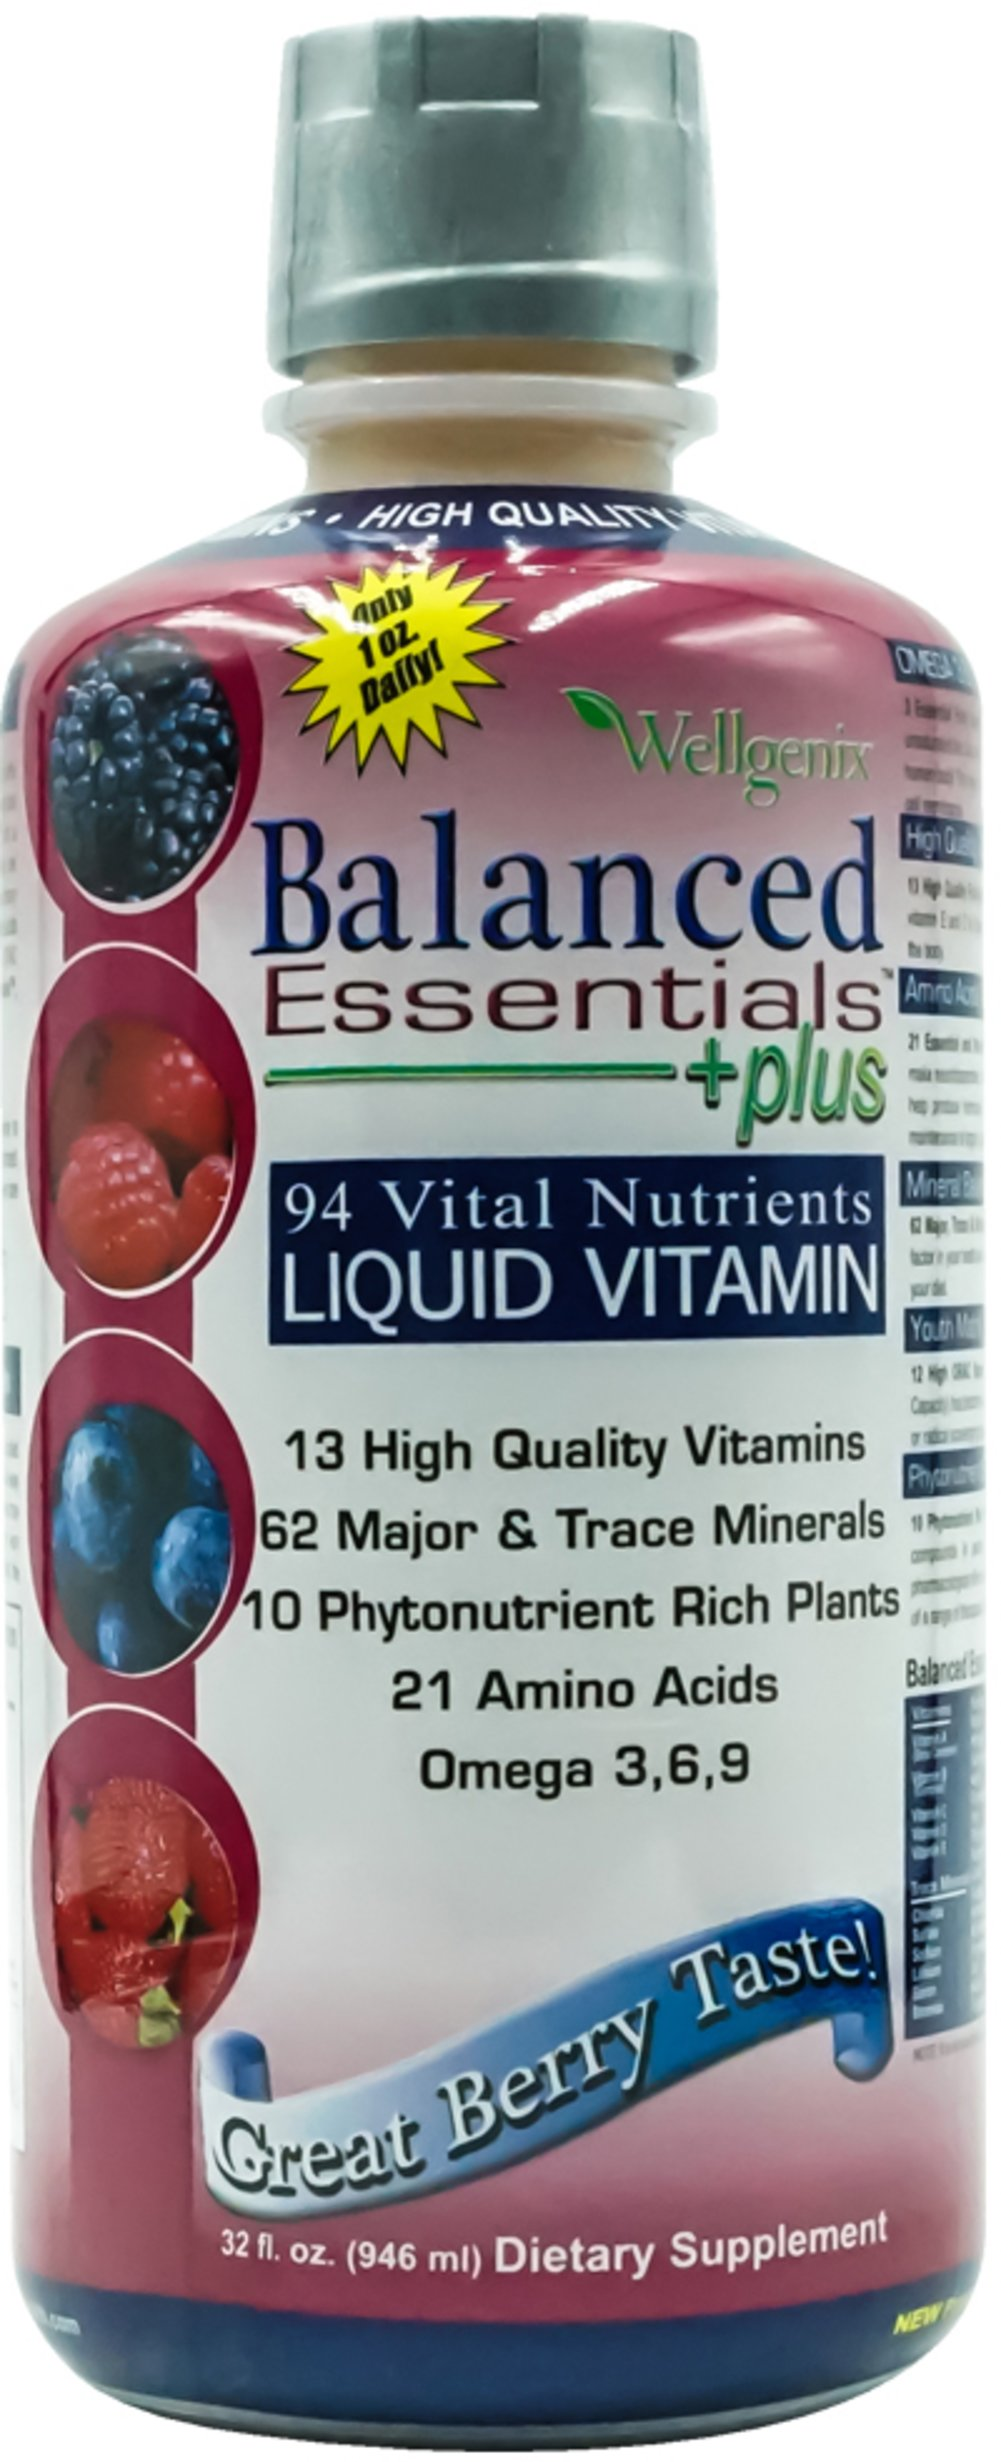 Balanced Essential™ Multivitamin  32 oz Liquid  $30.49